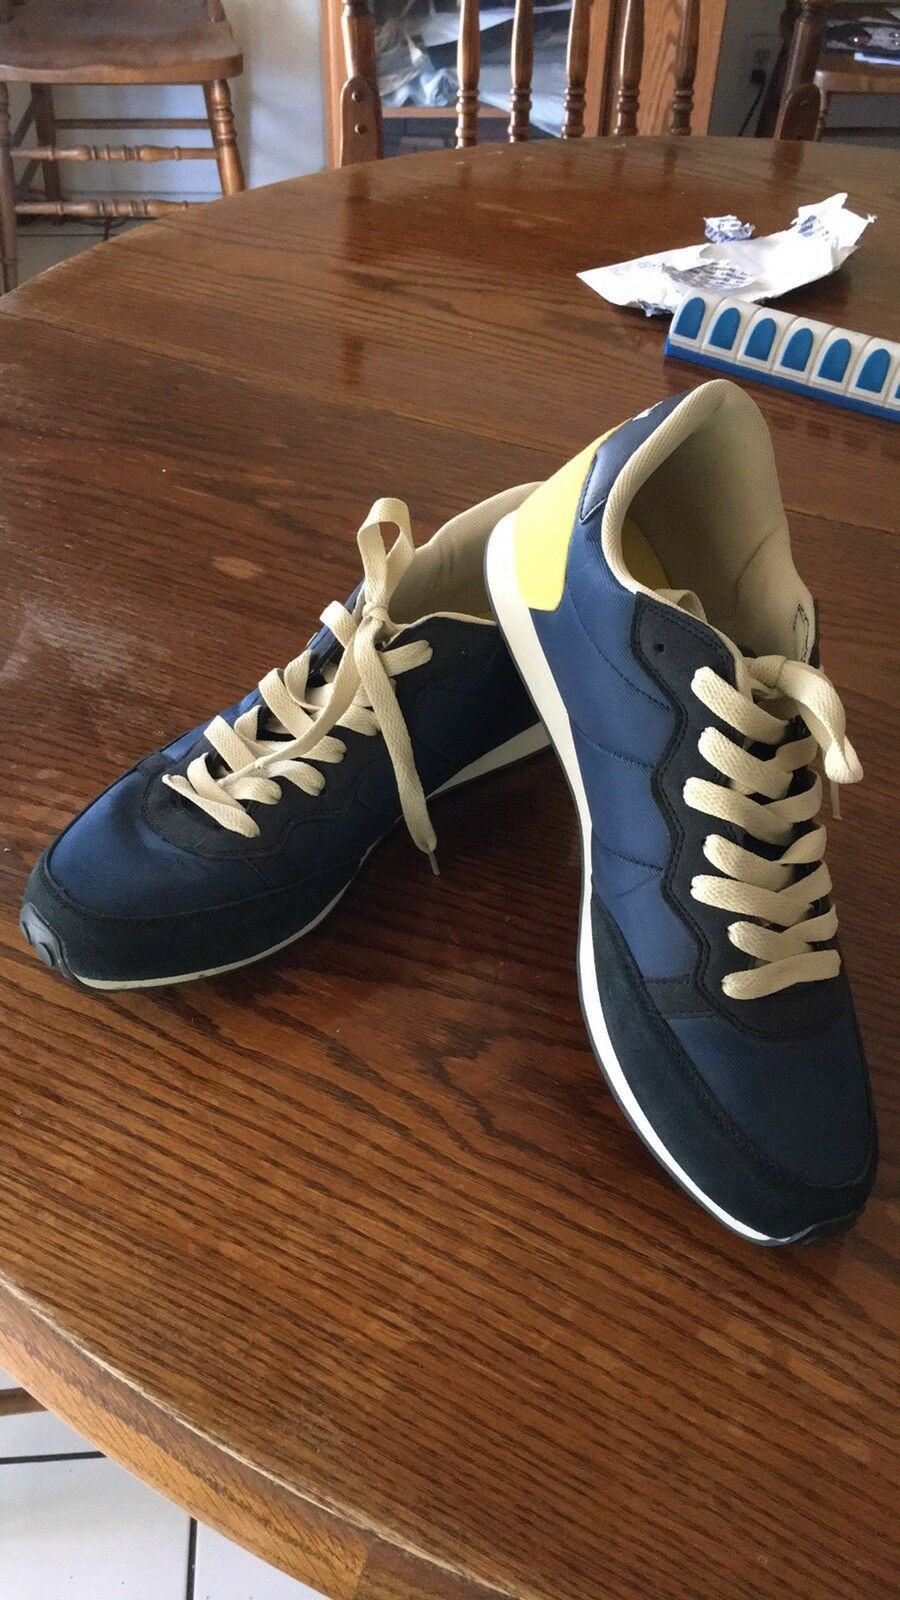 Admiral Men's bluee And Yellow Sneakers Size 11 1 2